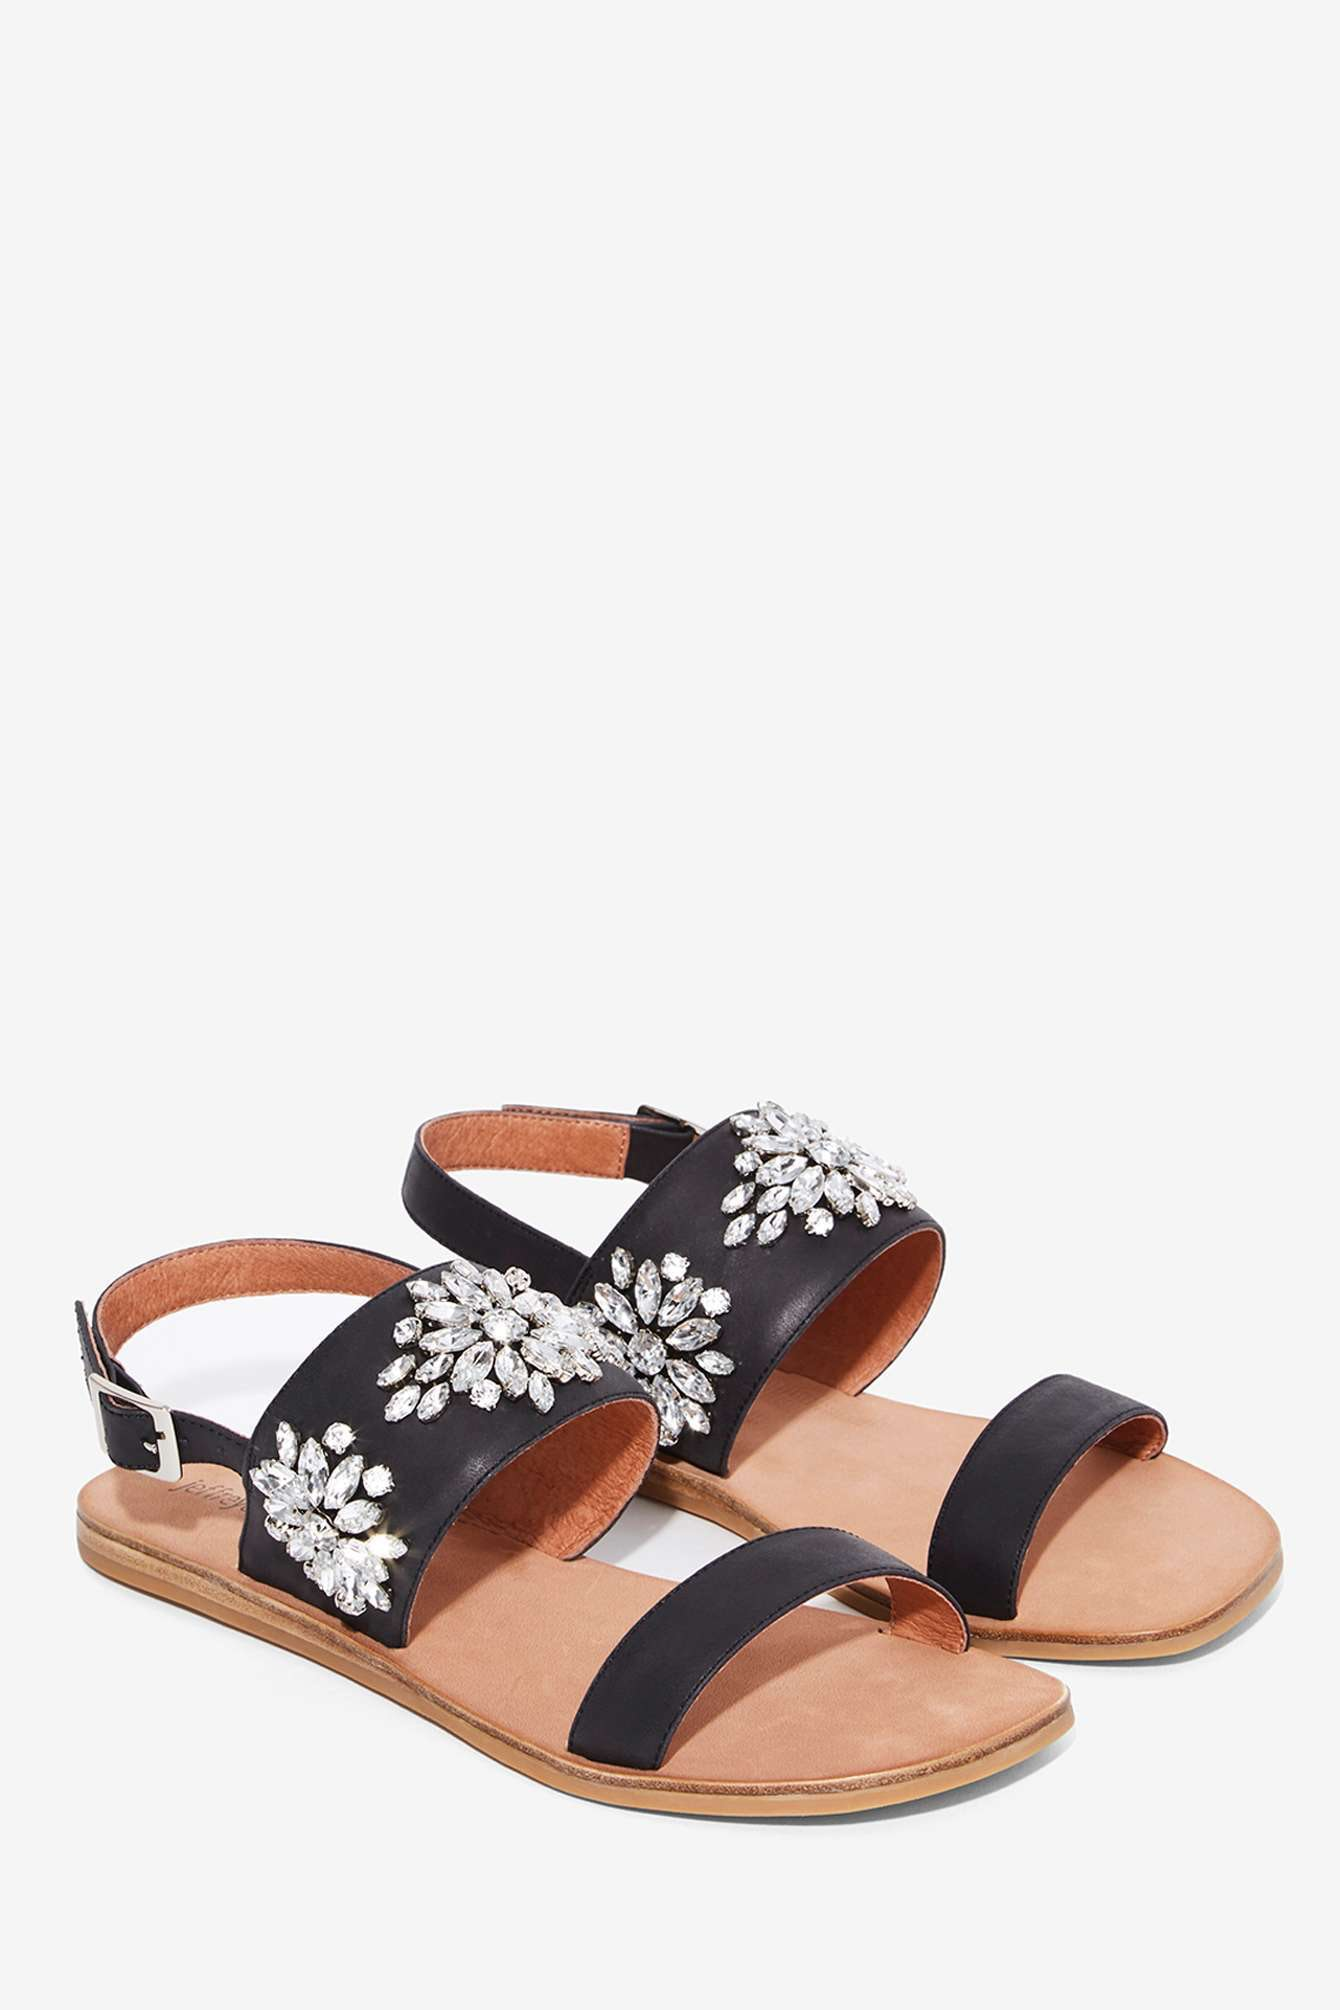 72ad47c01c5dd 12 Shoes To Buy In 2016 If You Loved The Steve Madden Stretchy Sandals —  PHOTOS